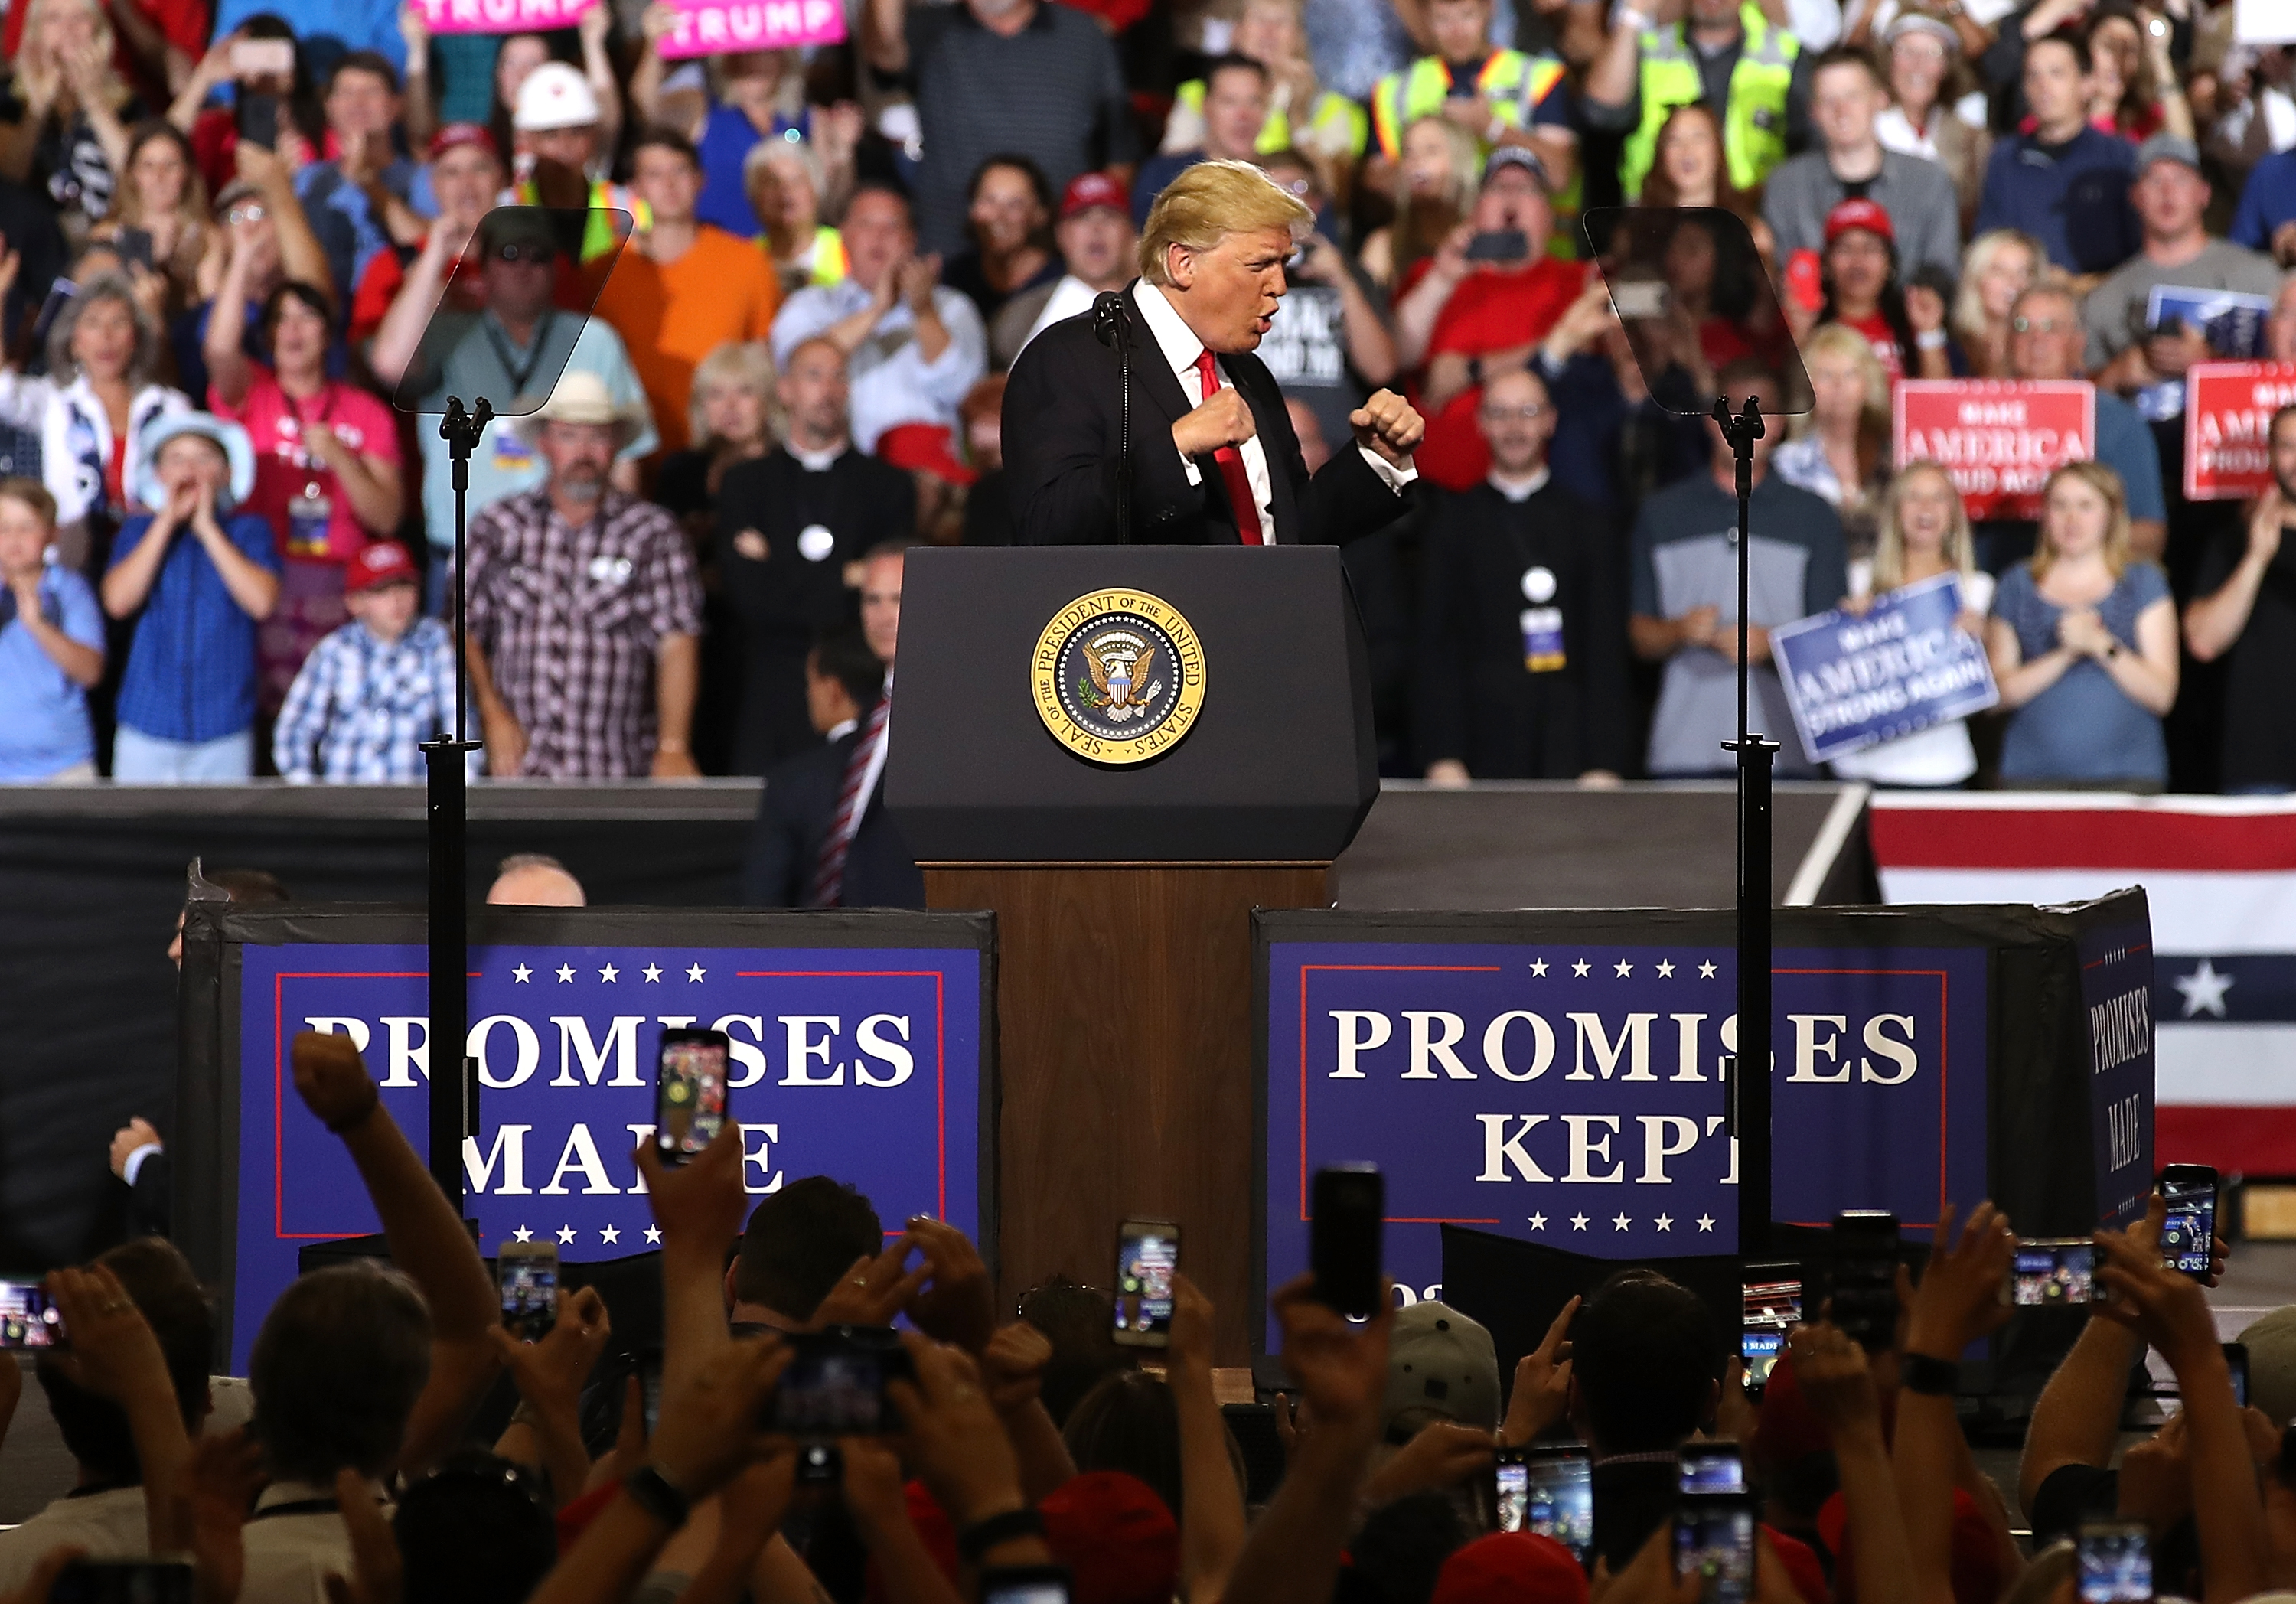 U.S. president Donald Trump greets supporters during a campaign rally at Four Seasons Arena on July 5, 2018 in Great Falls, Montana. Justin Sullivan/Getty Images